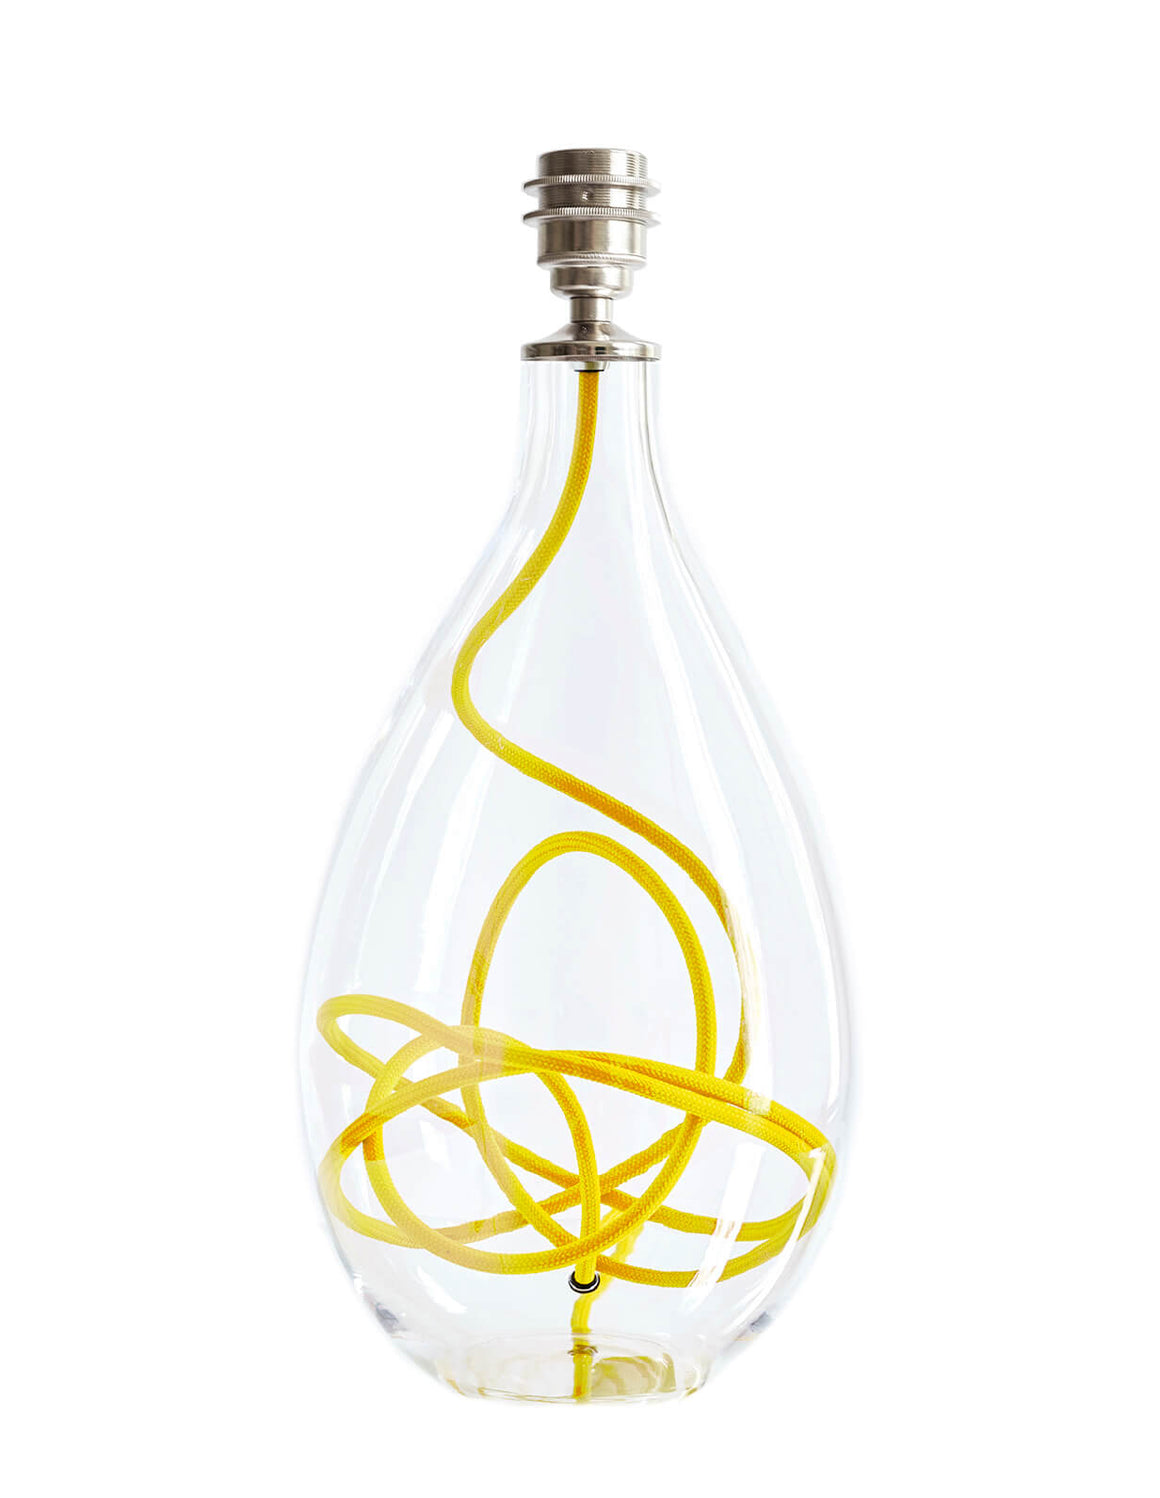 Glass lamp base with yellow flex, designed by Anna Jacobs